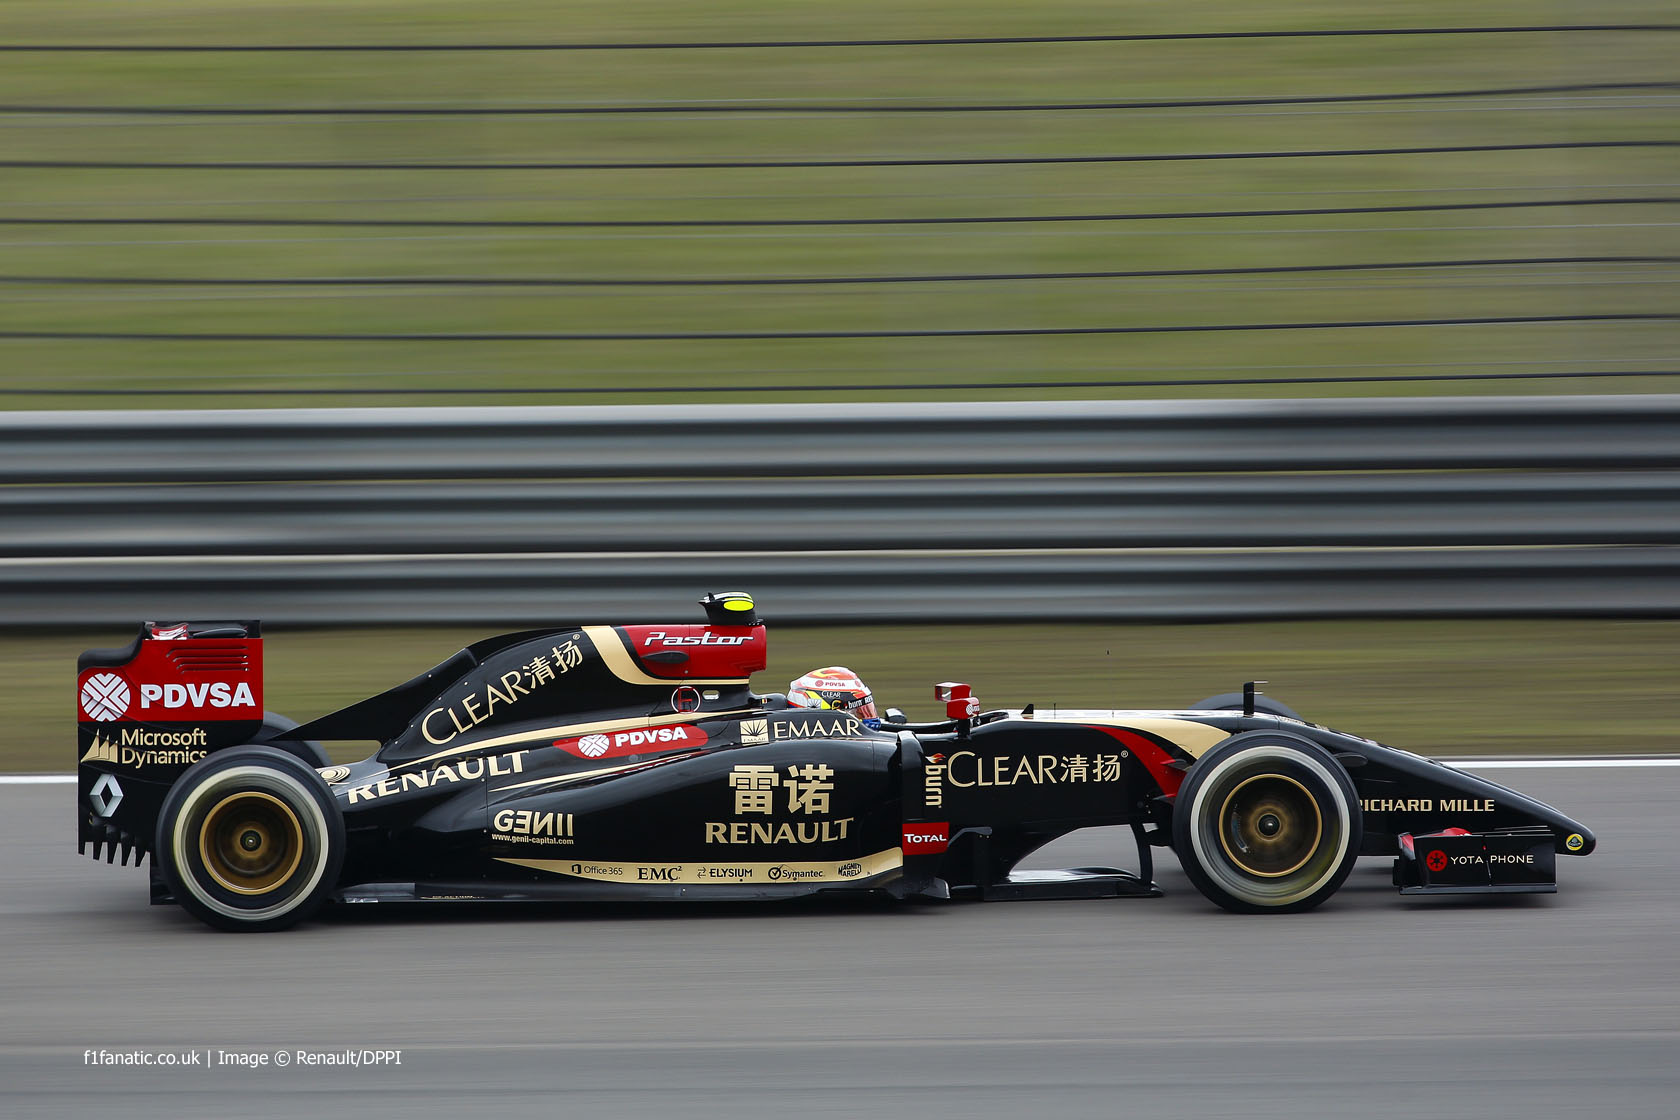 Pastor Maldonado, Lotus, Shanghai International Circuit, 2014